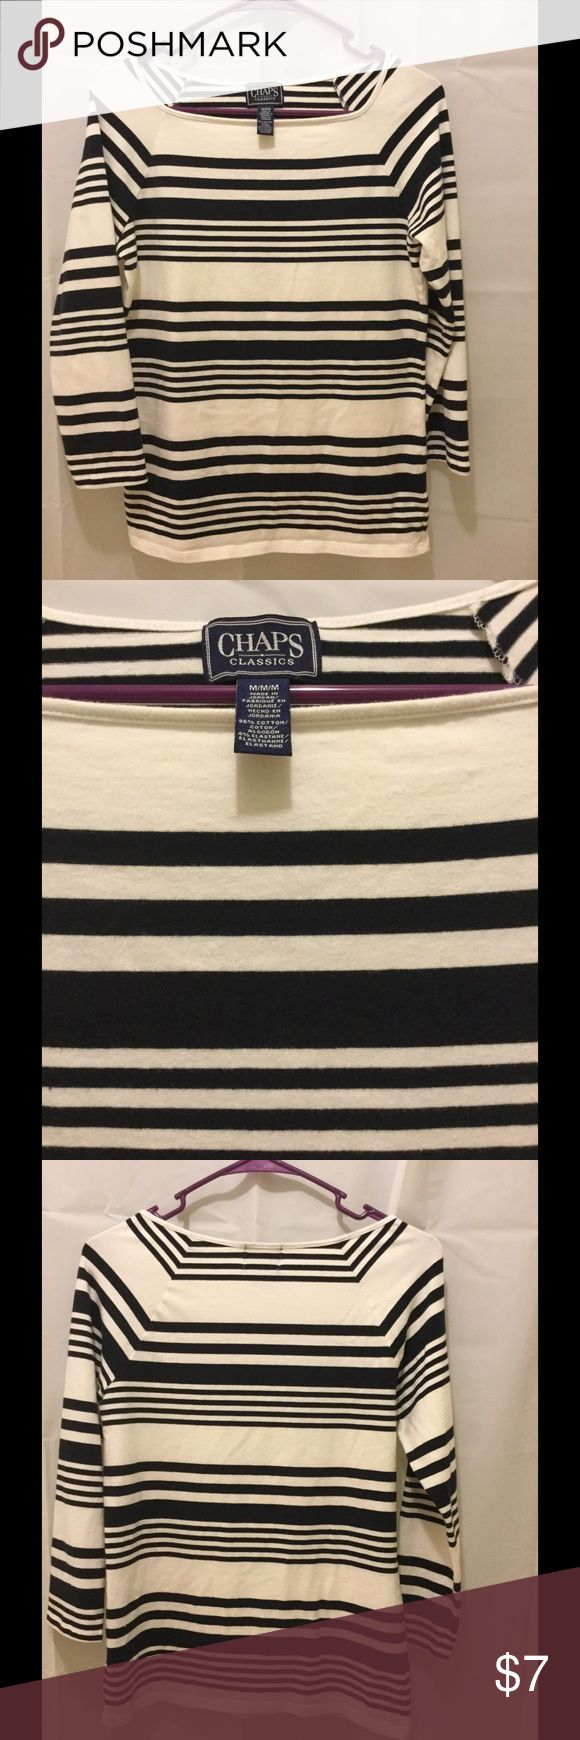 Chaps Women's Stripe Shirt Chaps Women's long sleeve striped shirt. Very clean, no spots. 96% cotton/4% elastane. Machine washable. Thanks for shopping. Tops